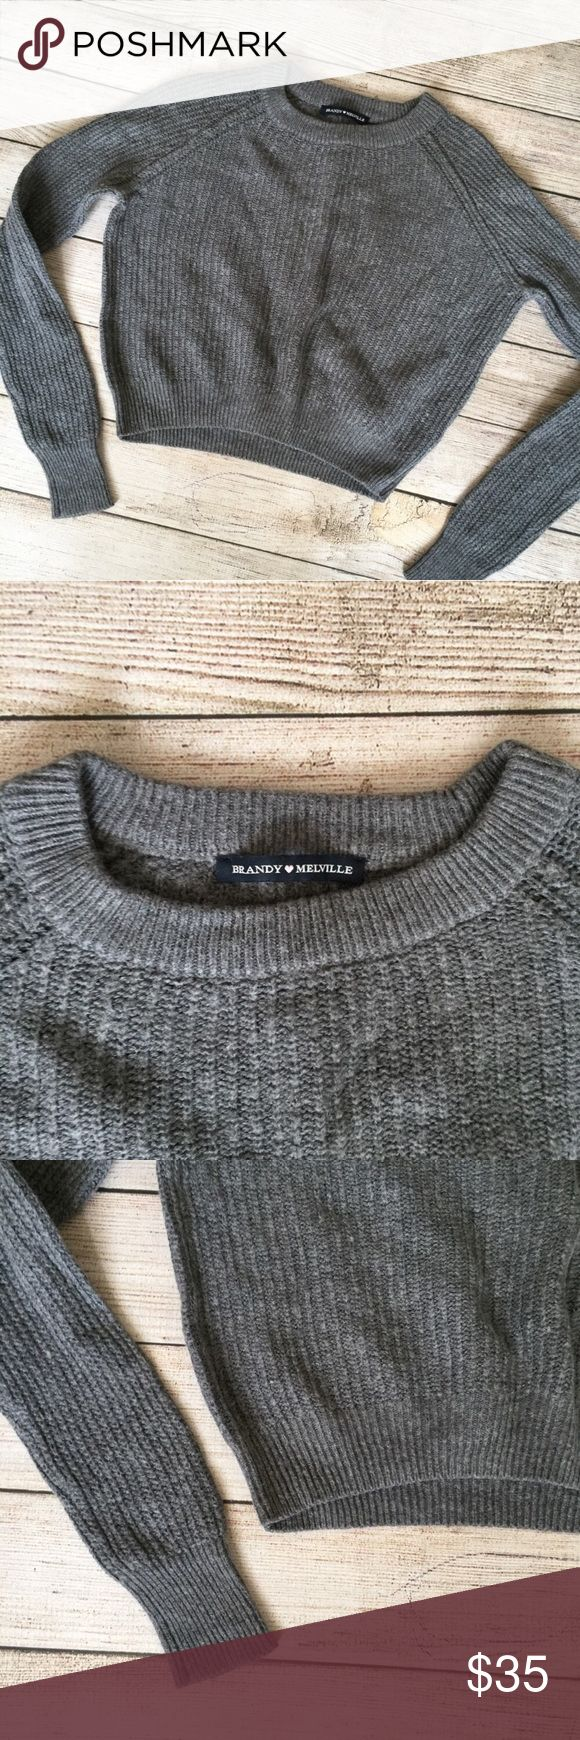 Brandy Melville Gray Cropped Sweater Ribbed throughout. Long sleeves. Gently worn, but still in great condition 🚫NO TRADES/NO MODELING🚫✅BUNDLE TO SAVE✅ Brandy Melville Sweaters